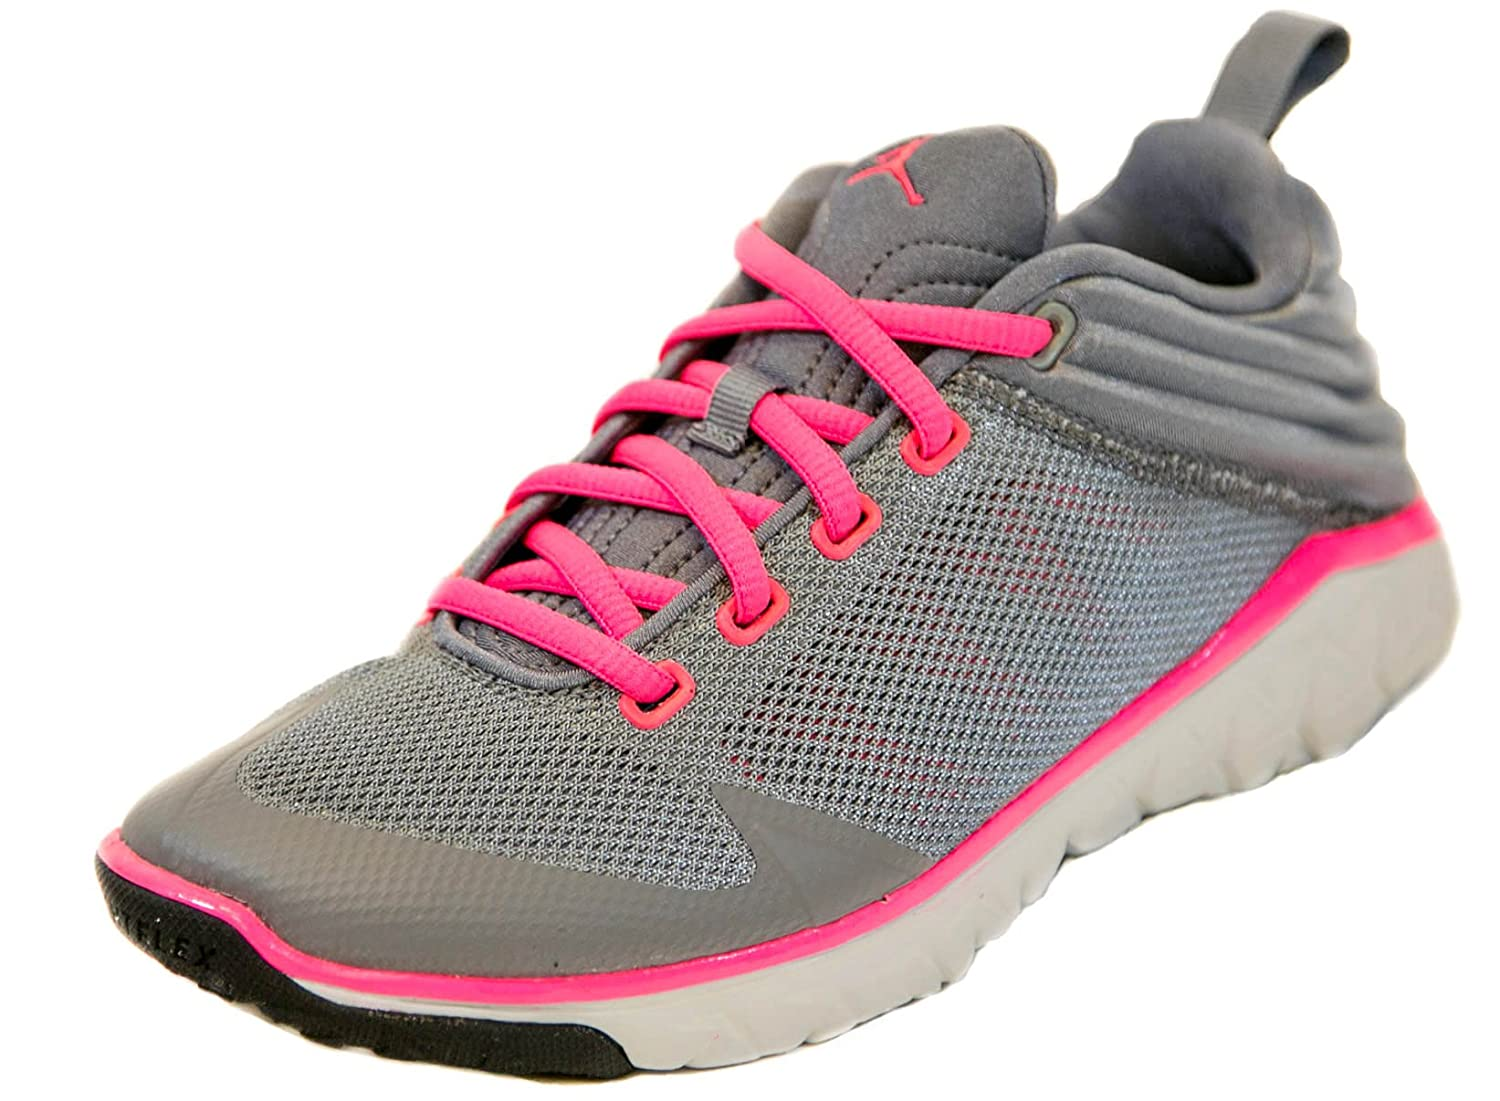 Jordan Flight Flex Trainer GG Youth Girls Training Shoes Grey//Pink 5.5Y Cl Grey//Hyper Pink Pr Platinum Black